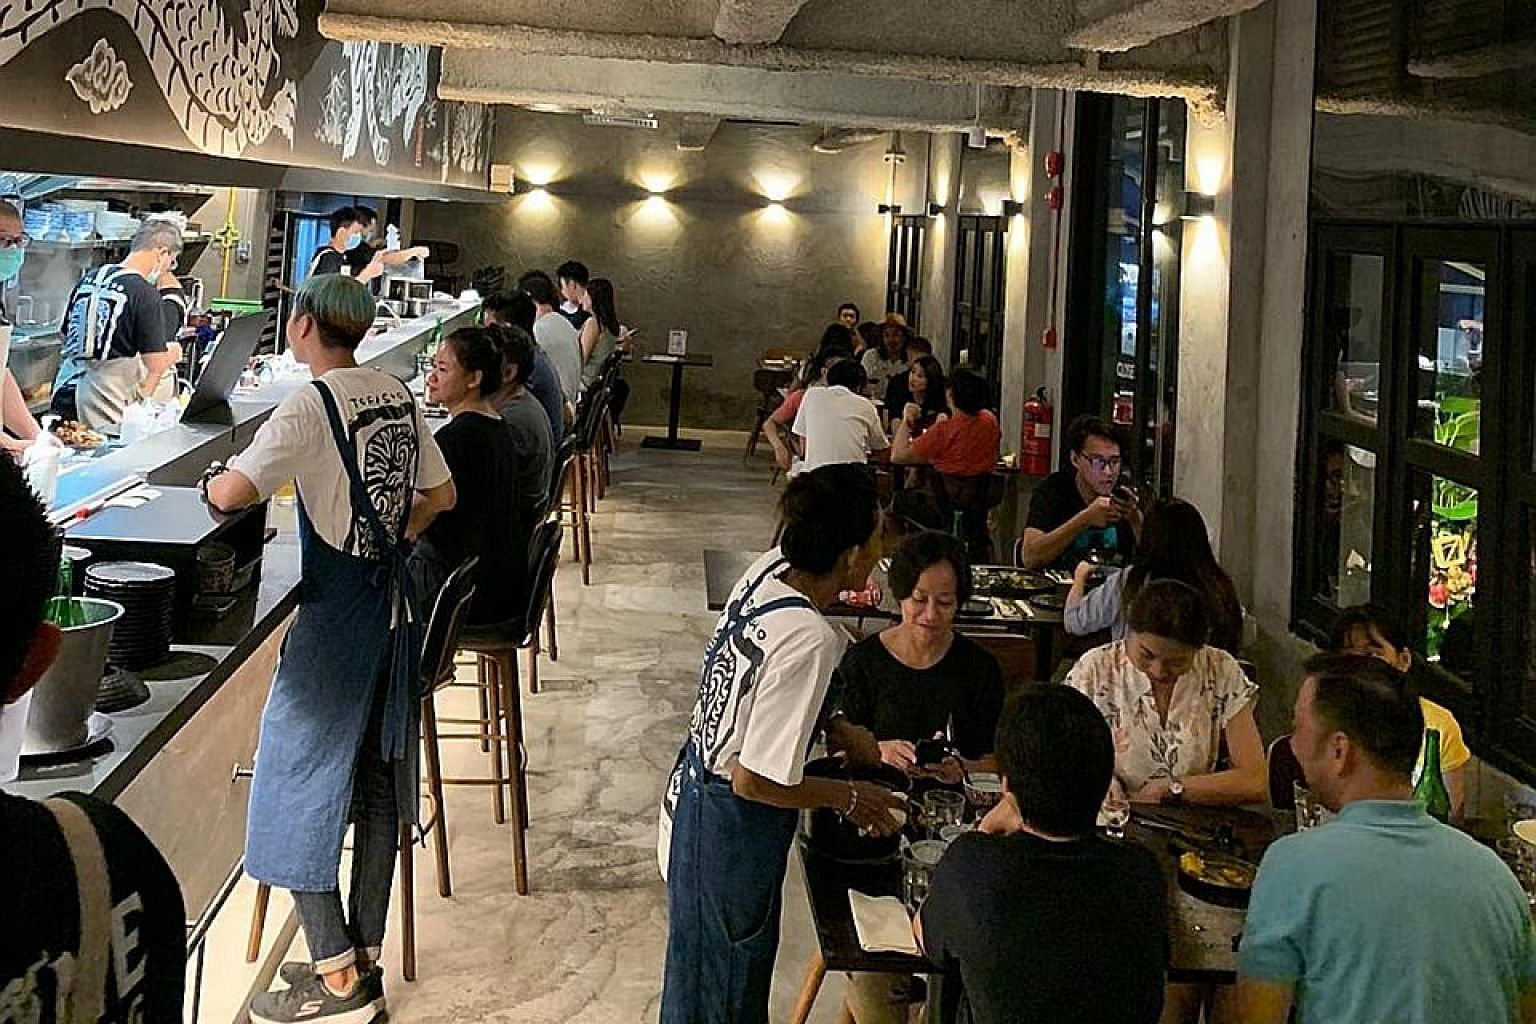 Torasho, a ramen and izakaya restaurant in Tras Street, has been enjoying a bustling dine-in scene, but is now looking at what it can offer for takeaways.